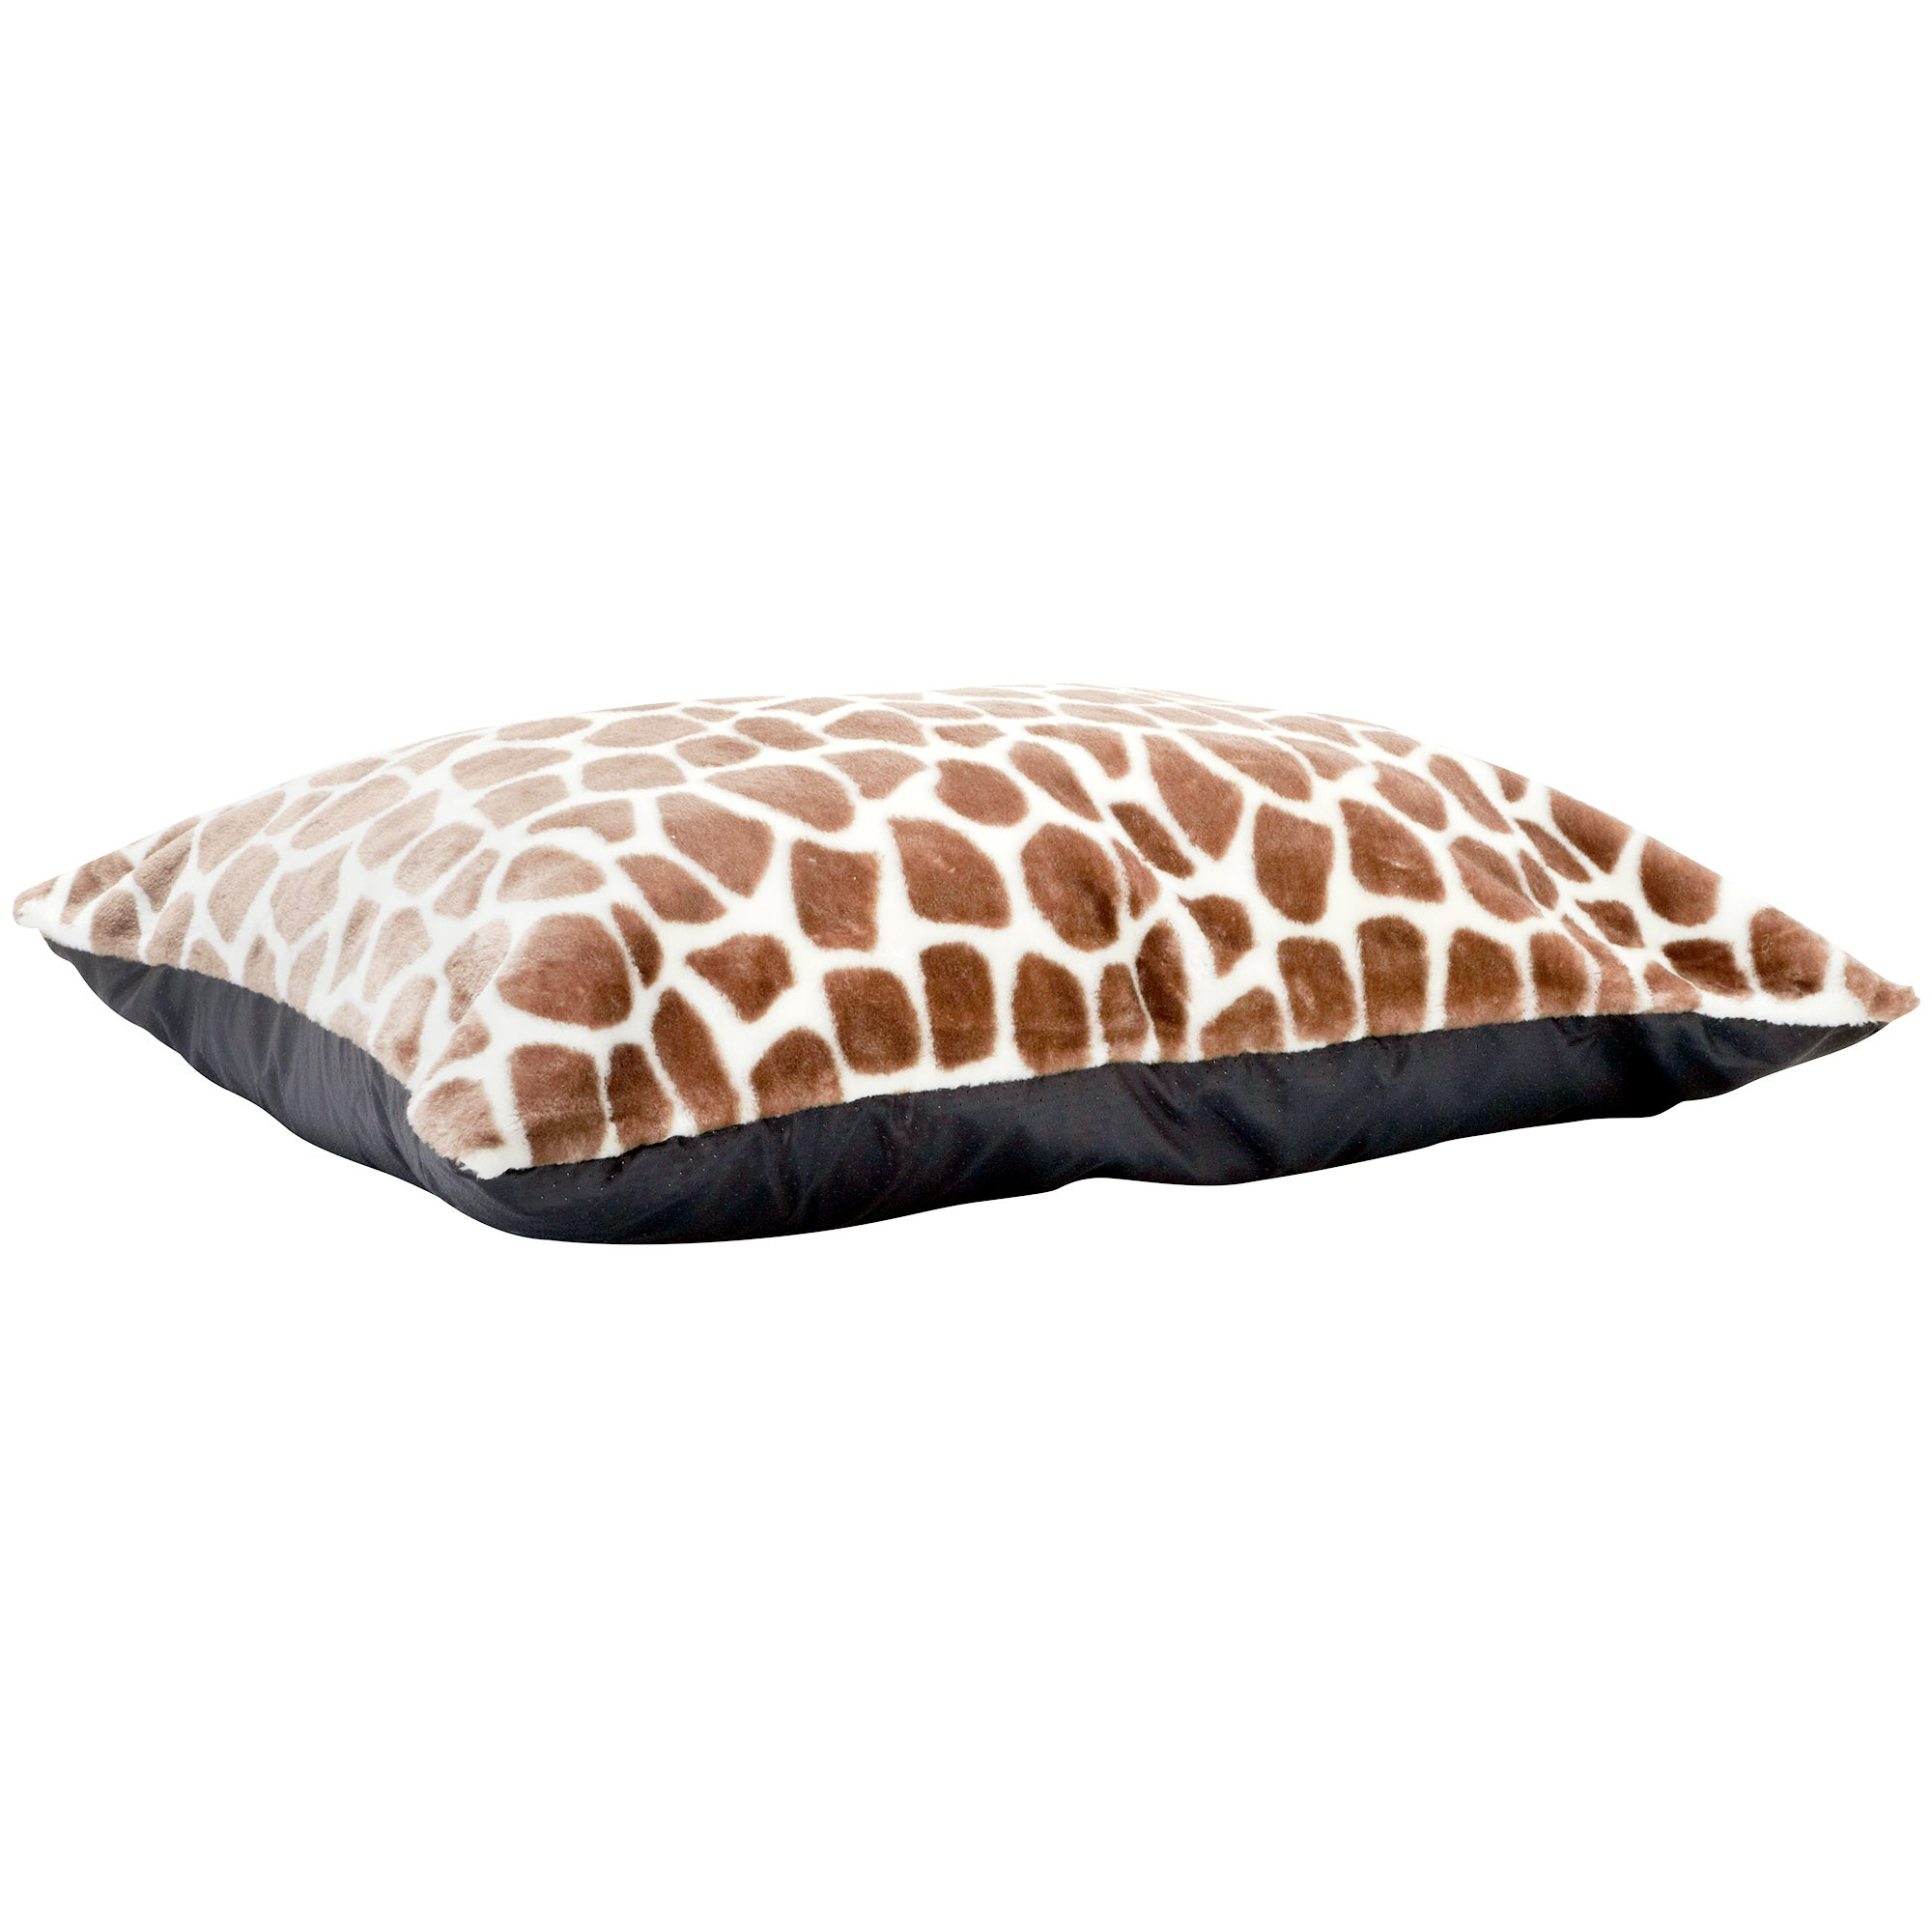 Giraffe Pet Cushion